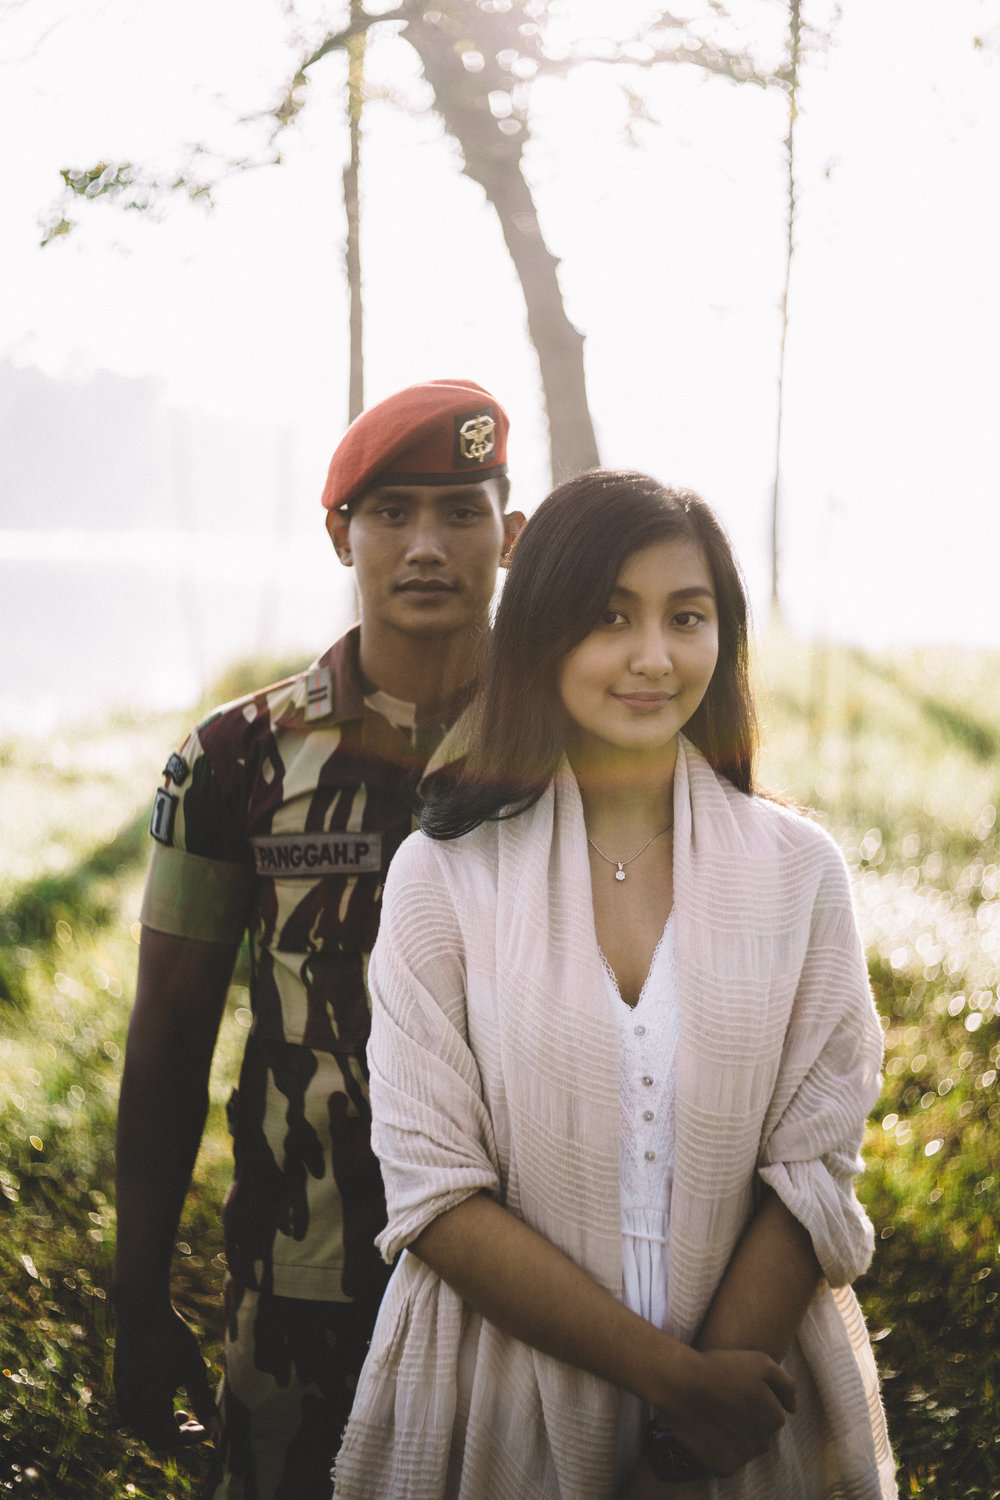 winny-panggah-couple-session-112.jpg